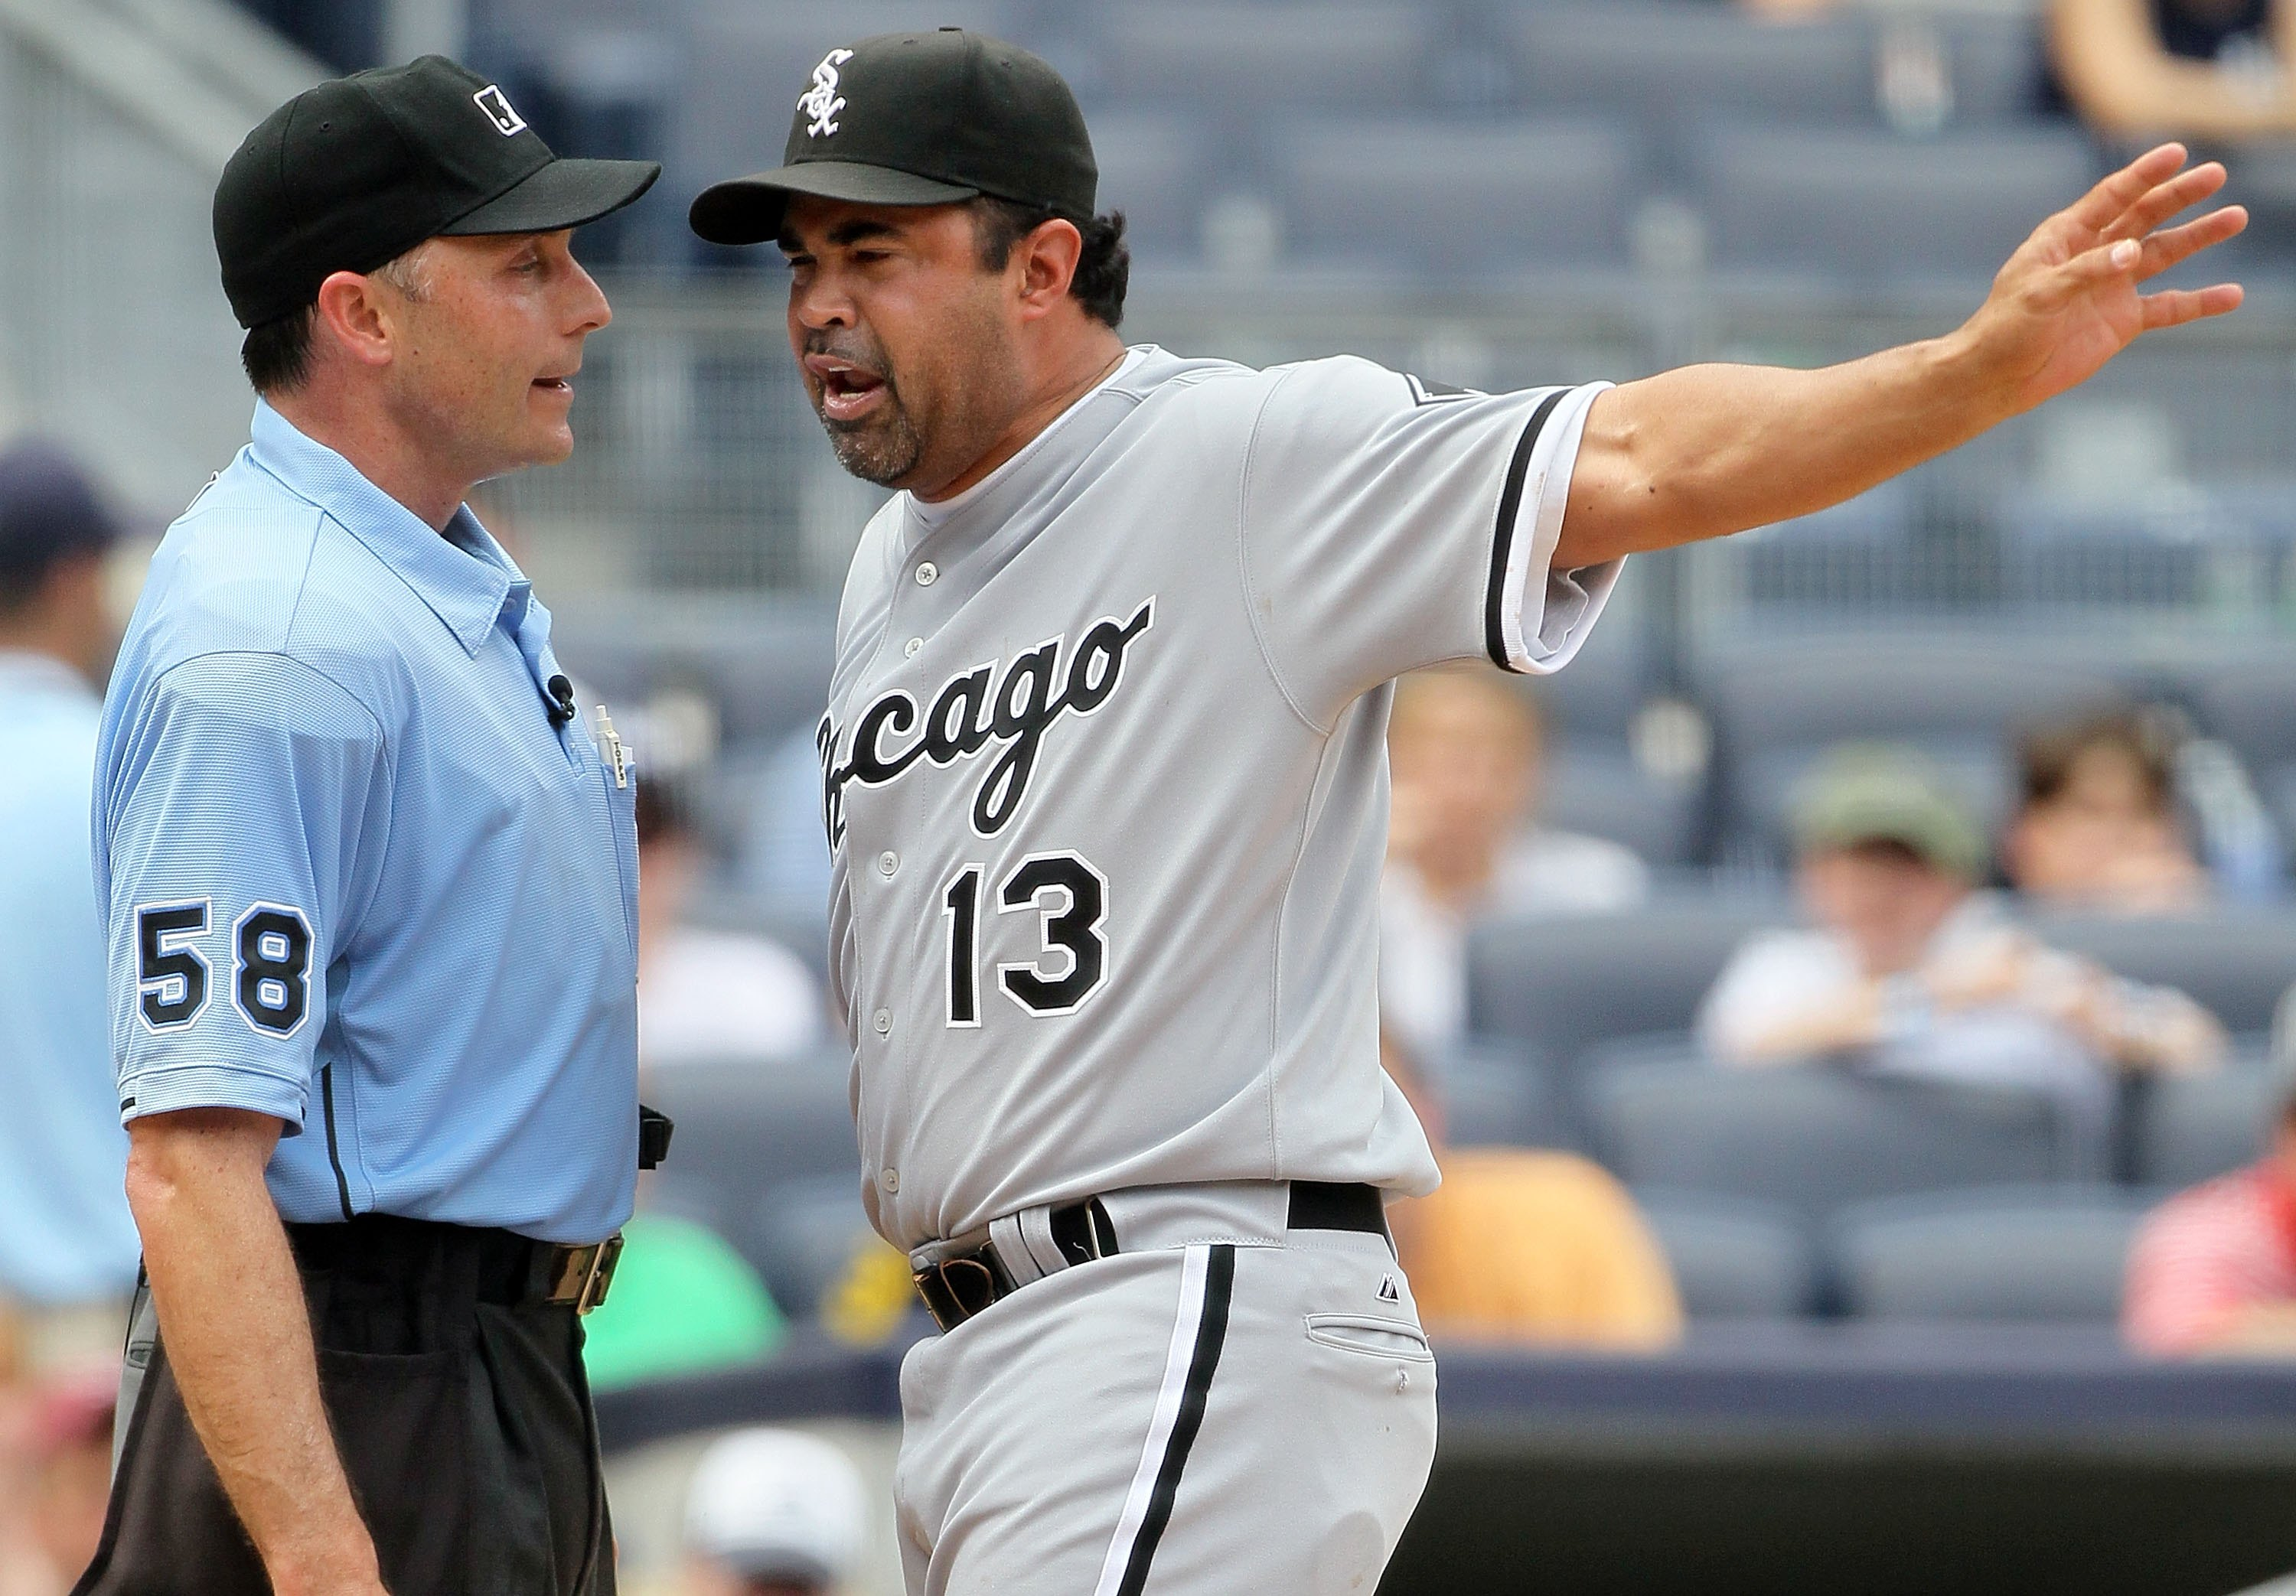 NEW YORK - MAY 02:  Manager Ozzie Guillen of the Chicago White Sox argues with home plate umpire Dan Iassogna during the game against the New York Yankees on May 2, 2010 at Yankee Stadium in the Bronx borough of New York City. The Yankees defeated the Whi